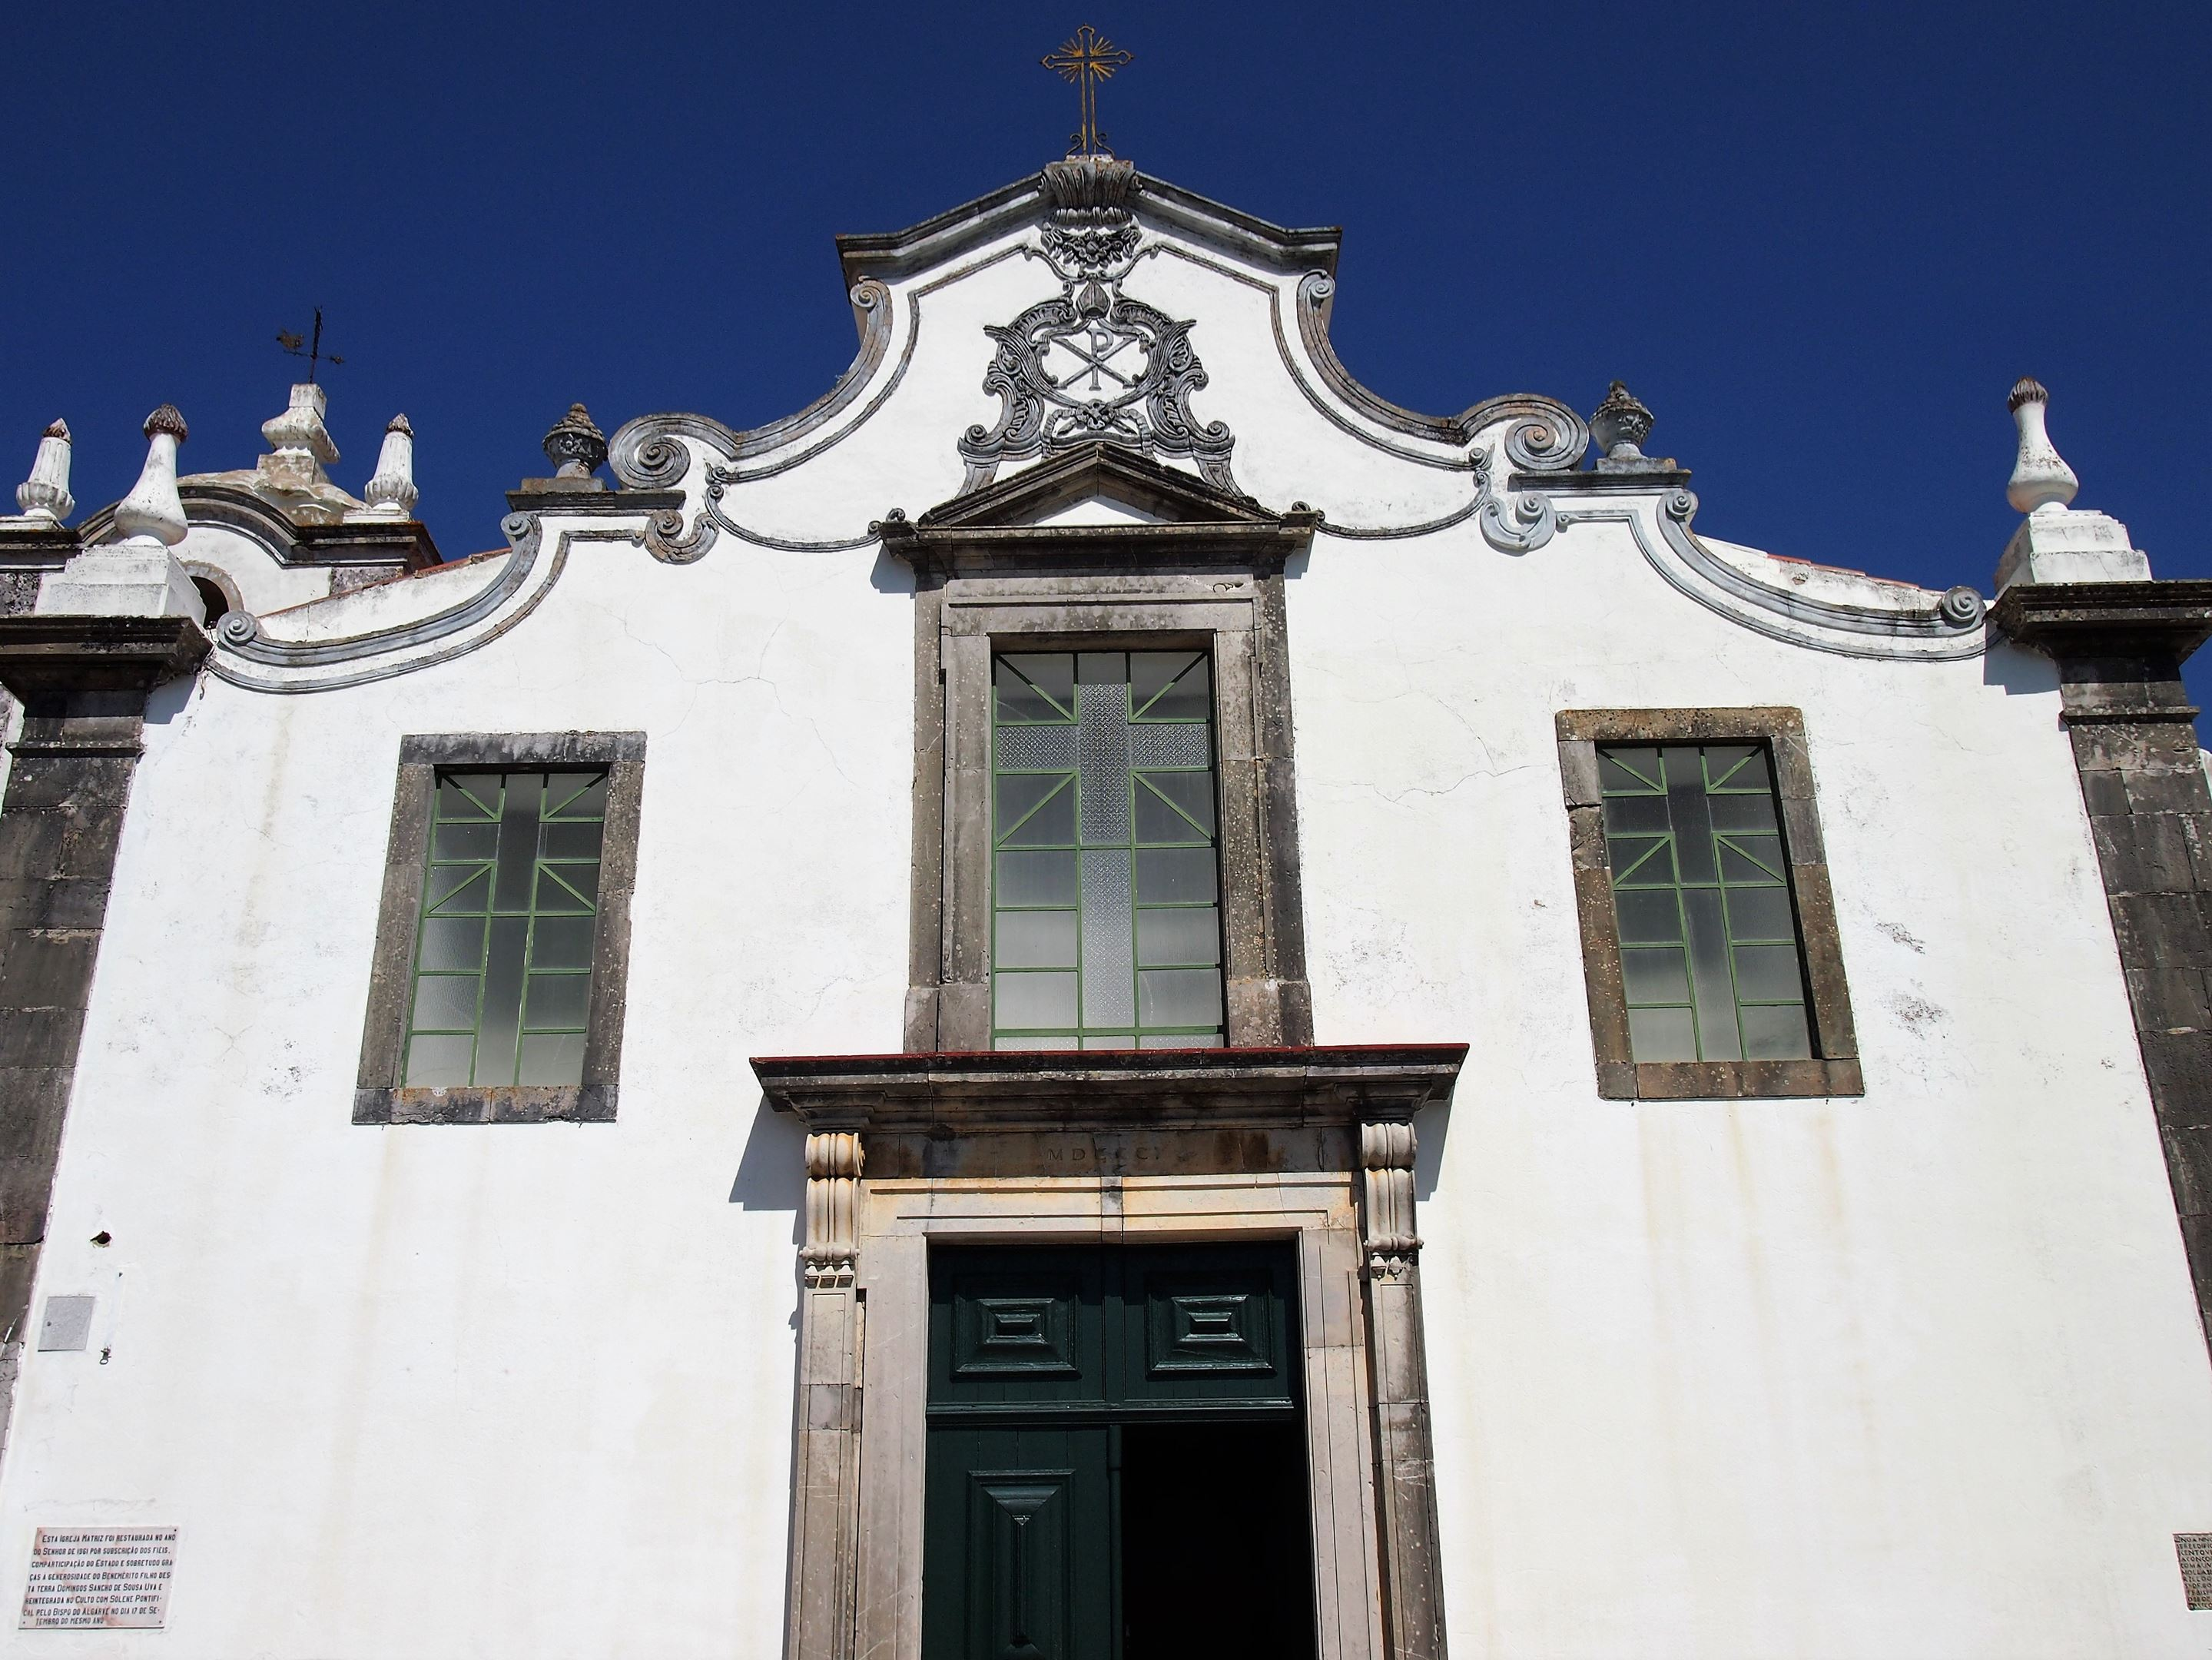 The Parish Church in São Brás de Alportel, Algarve